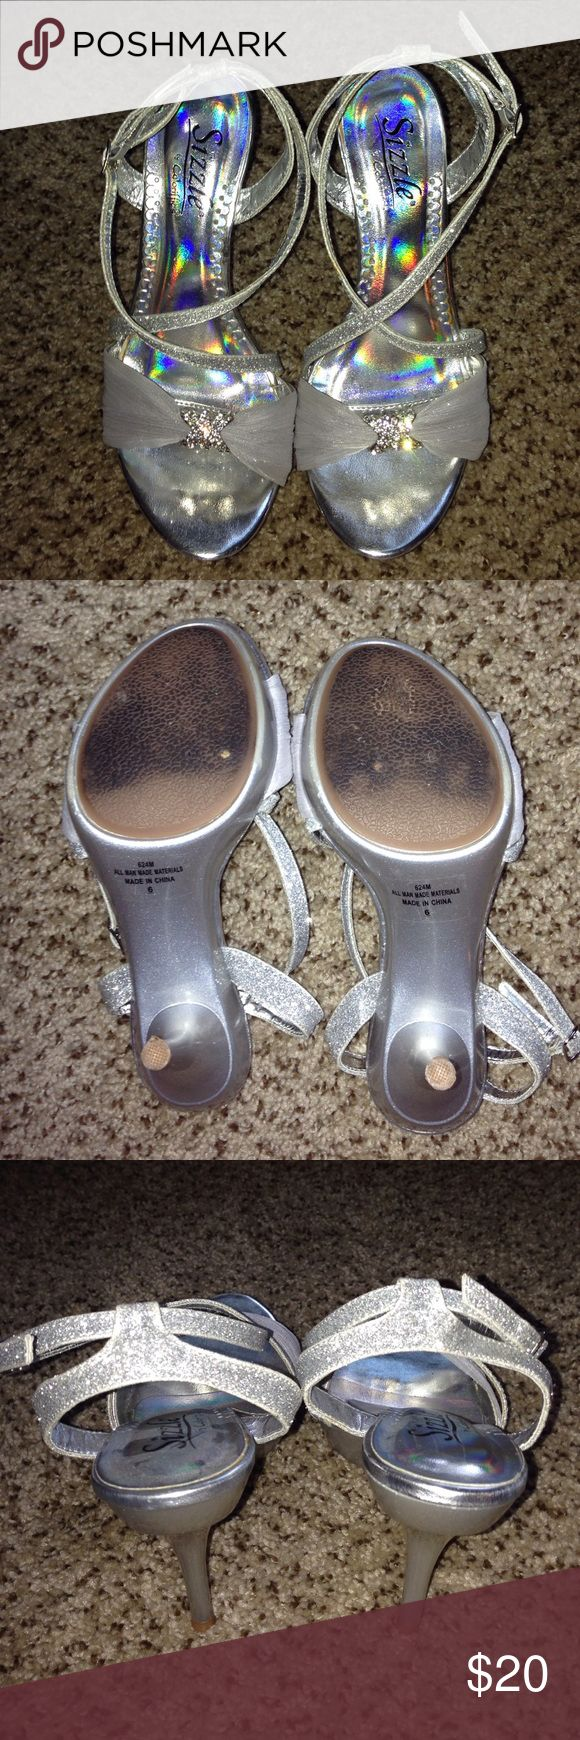 Silver bridesmaid shoes Worn once for a wedding. The only flaw is some of the glitter rubbed off on the left shoe where the straps cross (last pic). Heel is approx. 4 inches. Sizzle by Coloriffics Shoes Heels